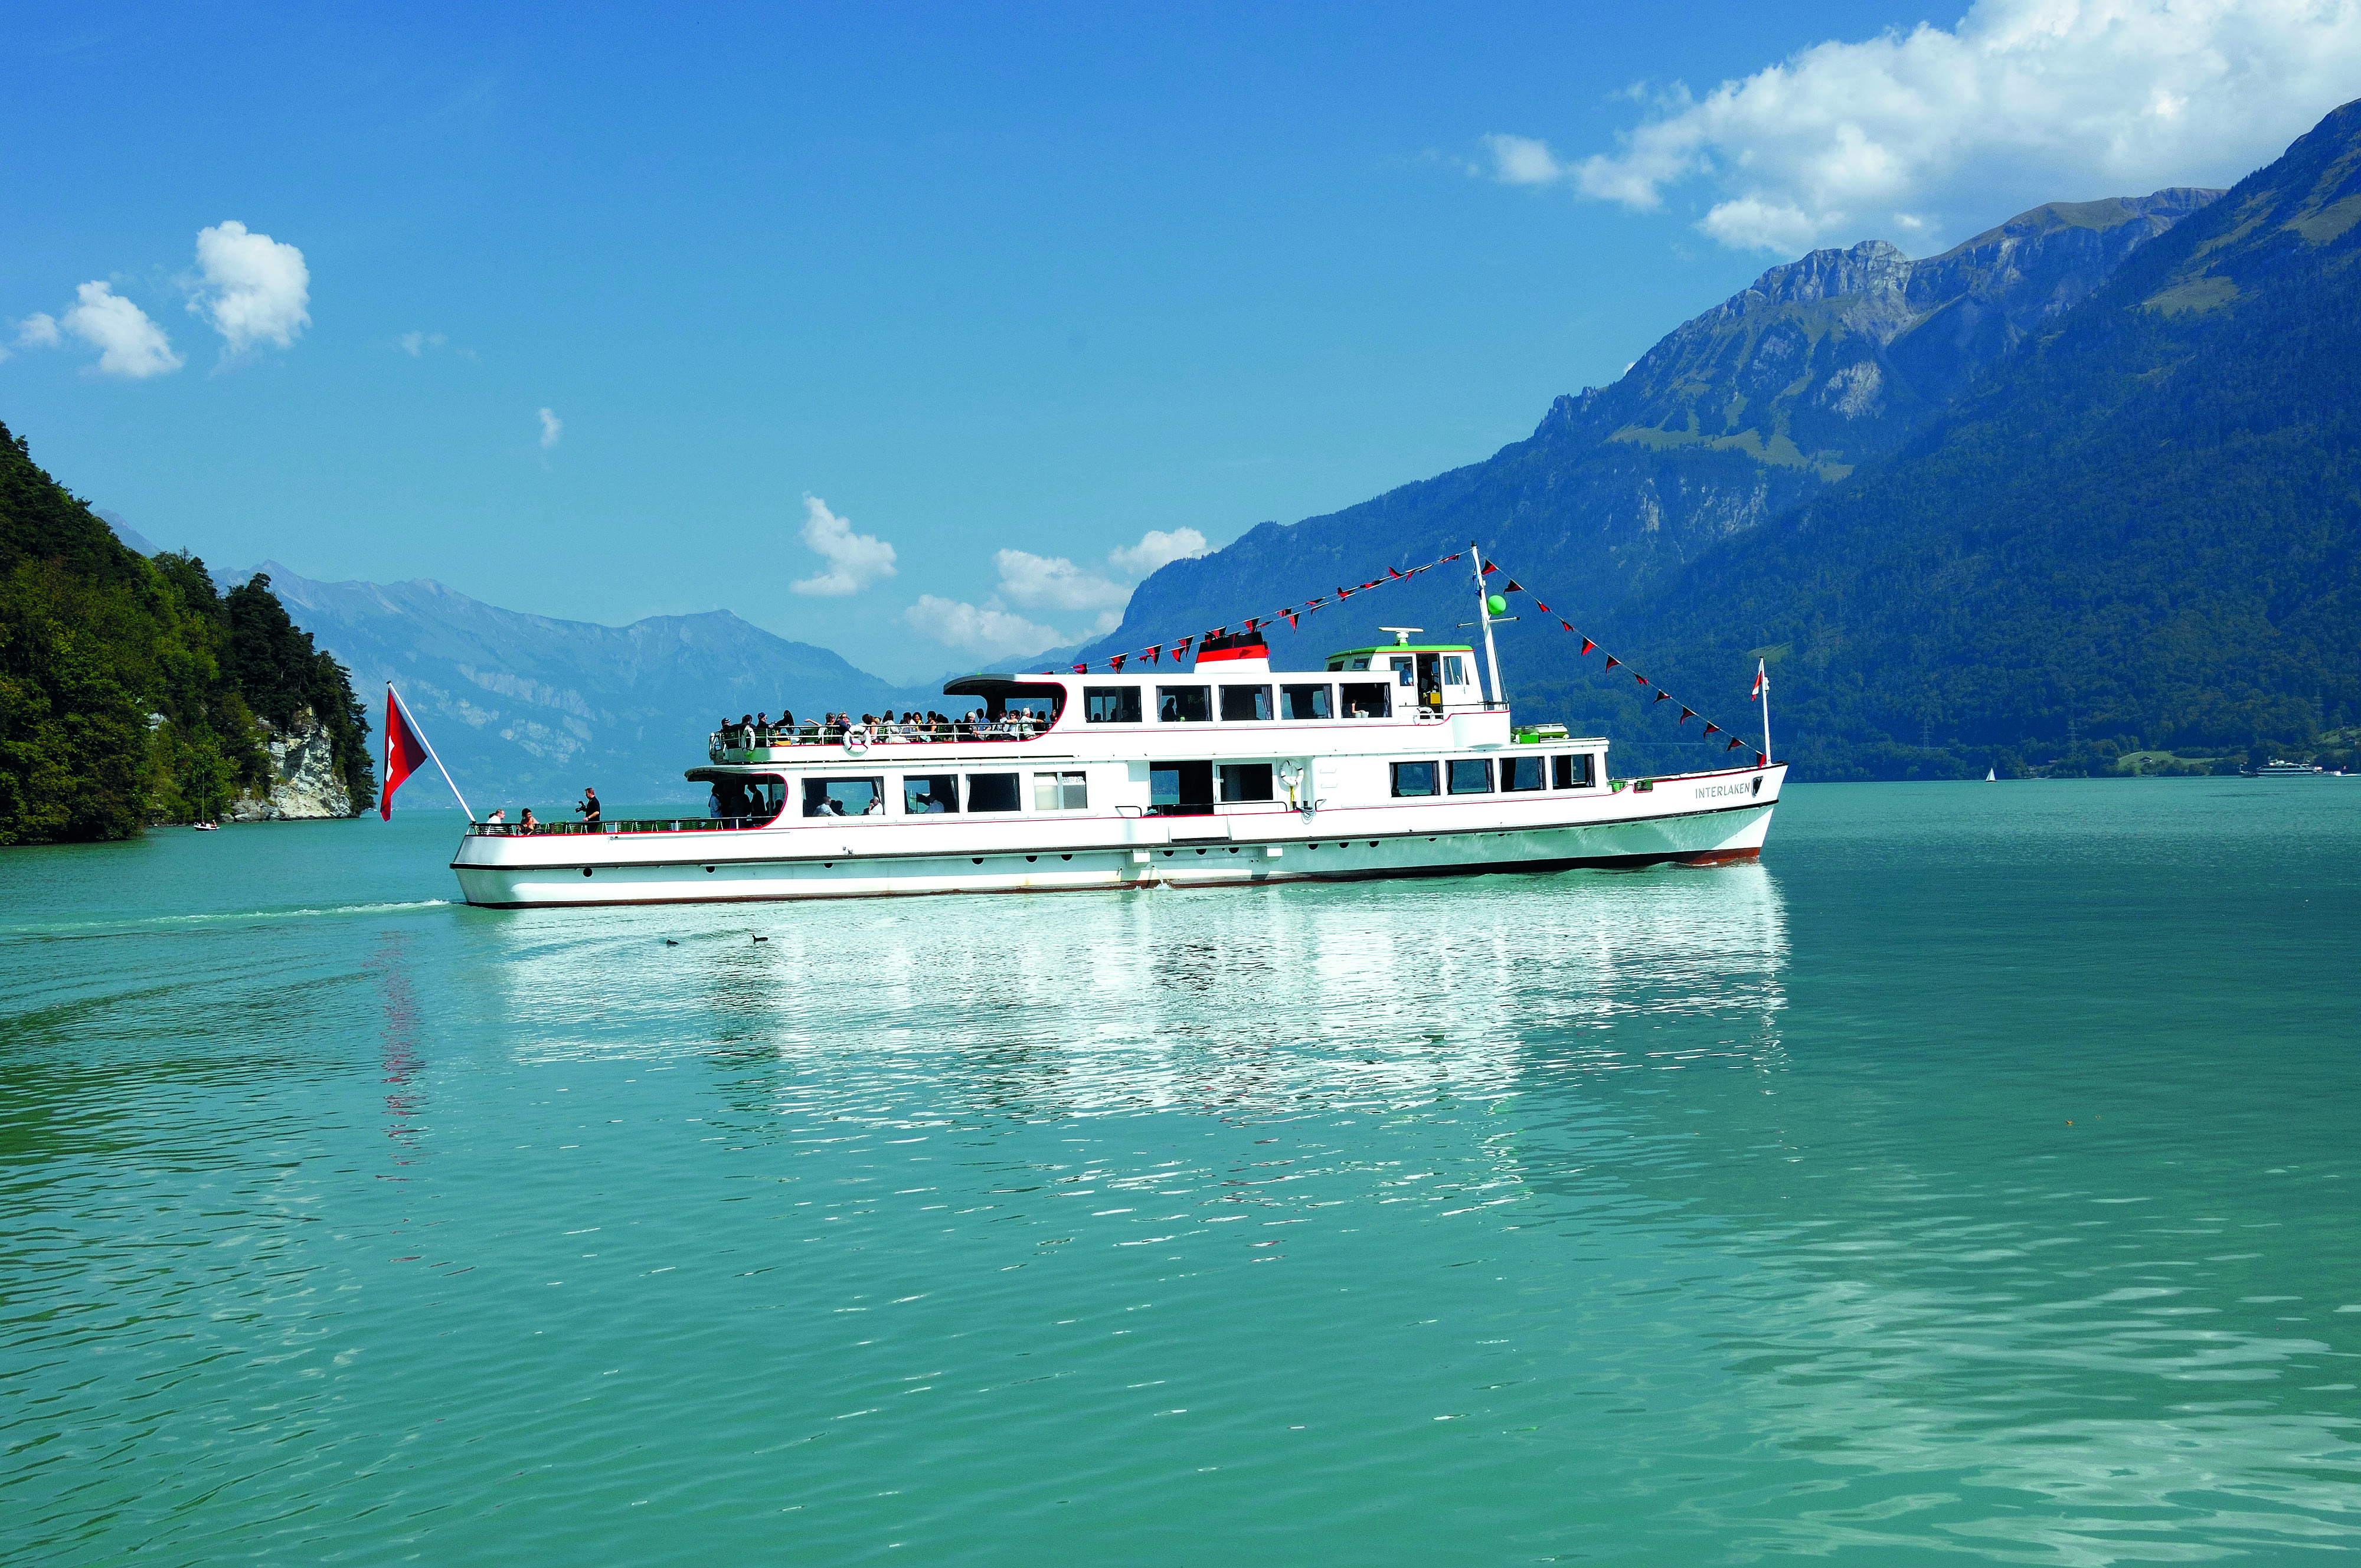 MS Interlaken 1